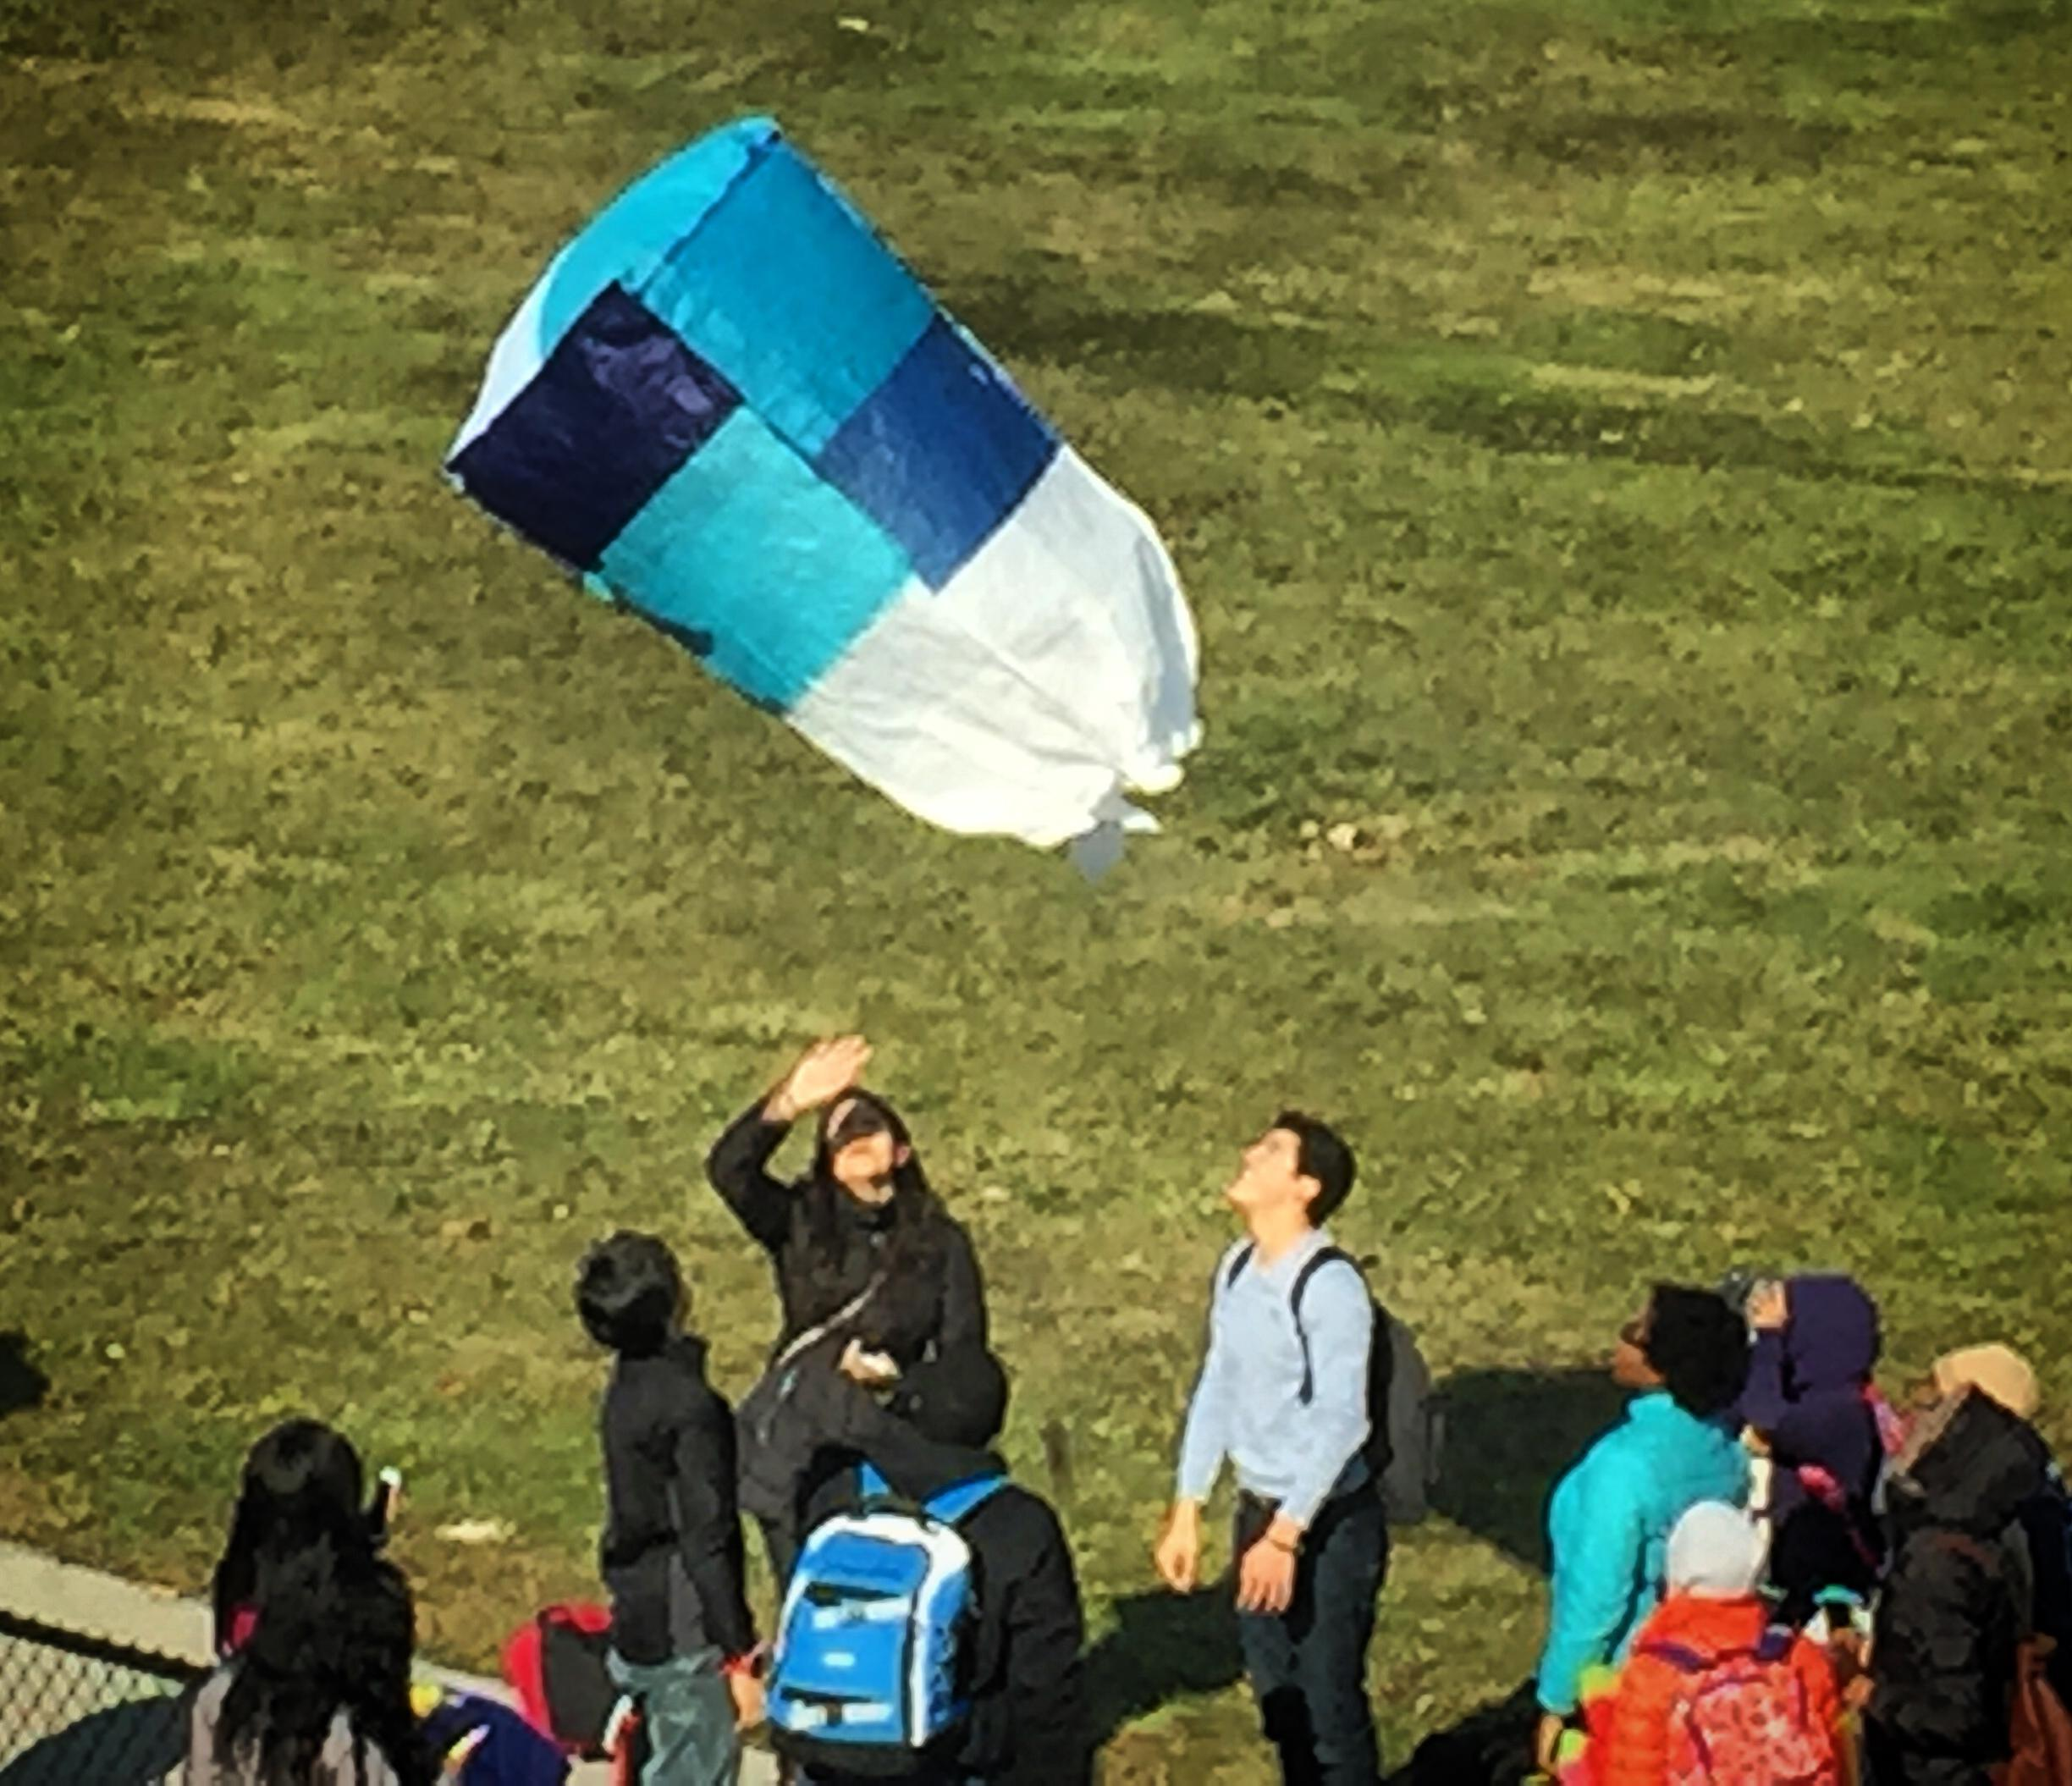 Ms. Zayed's students flying hot air balloons made of tissue paper out in the football field.